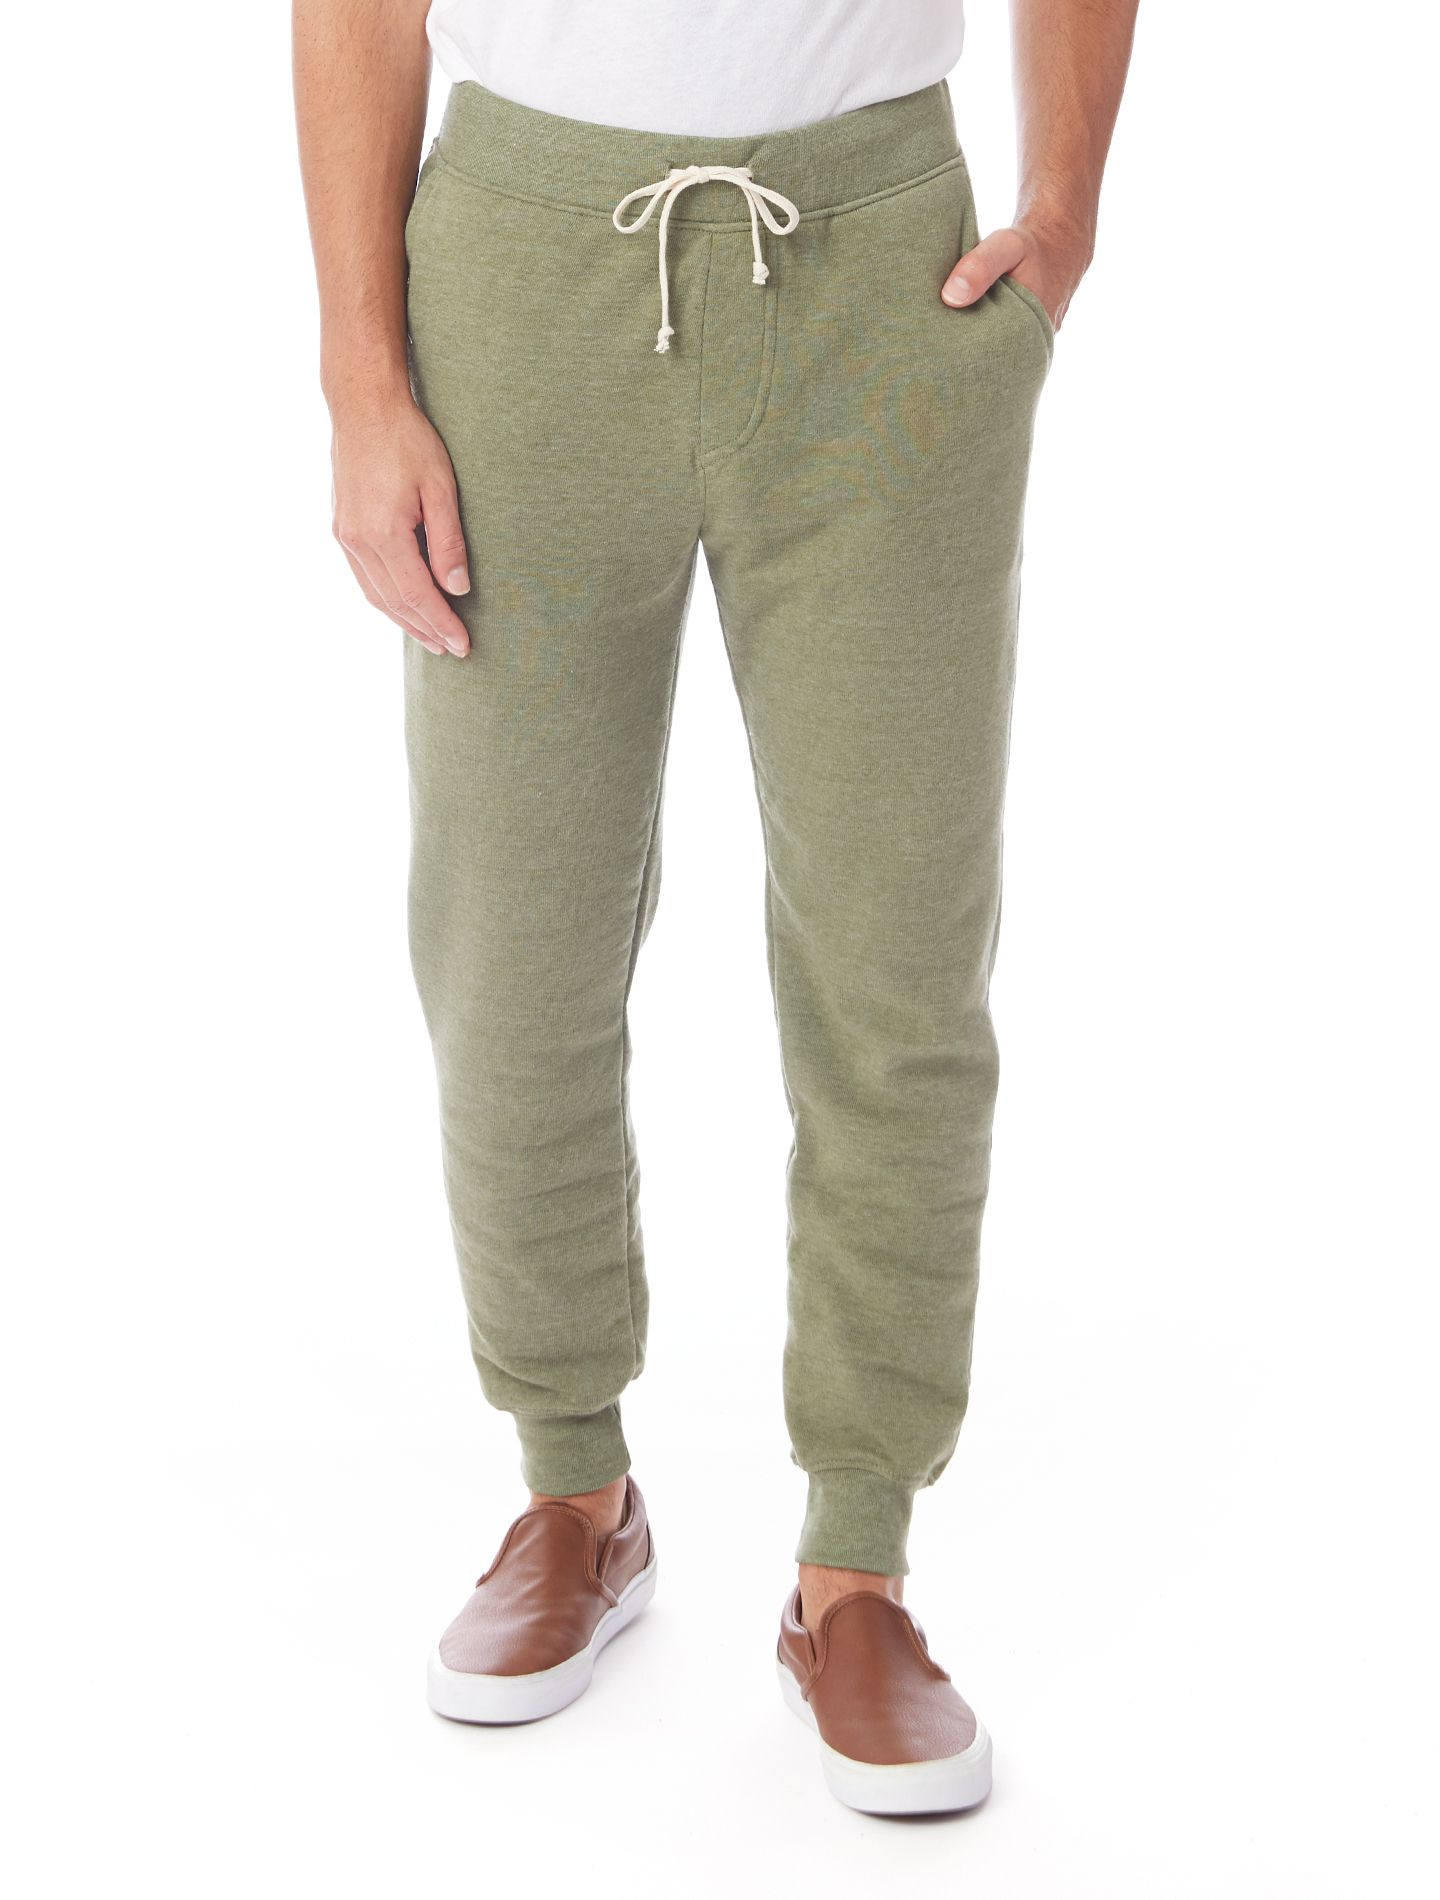 ALTERNATIVE Loungewear